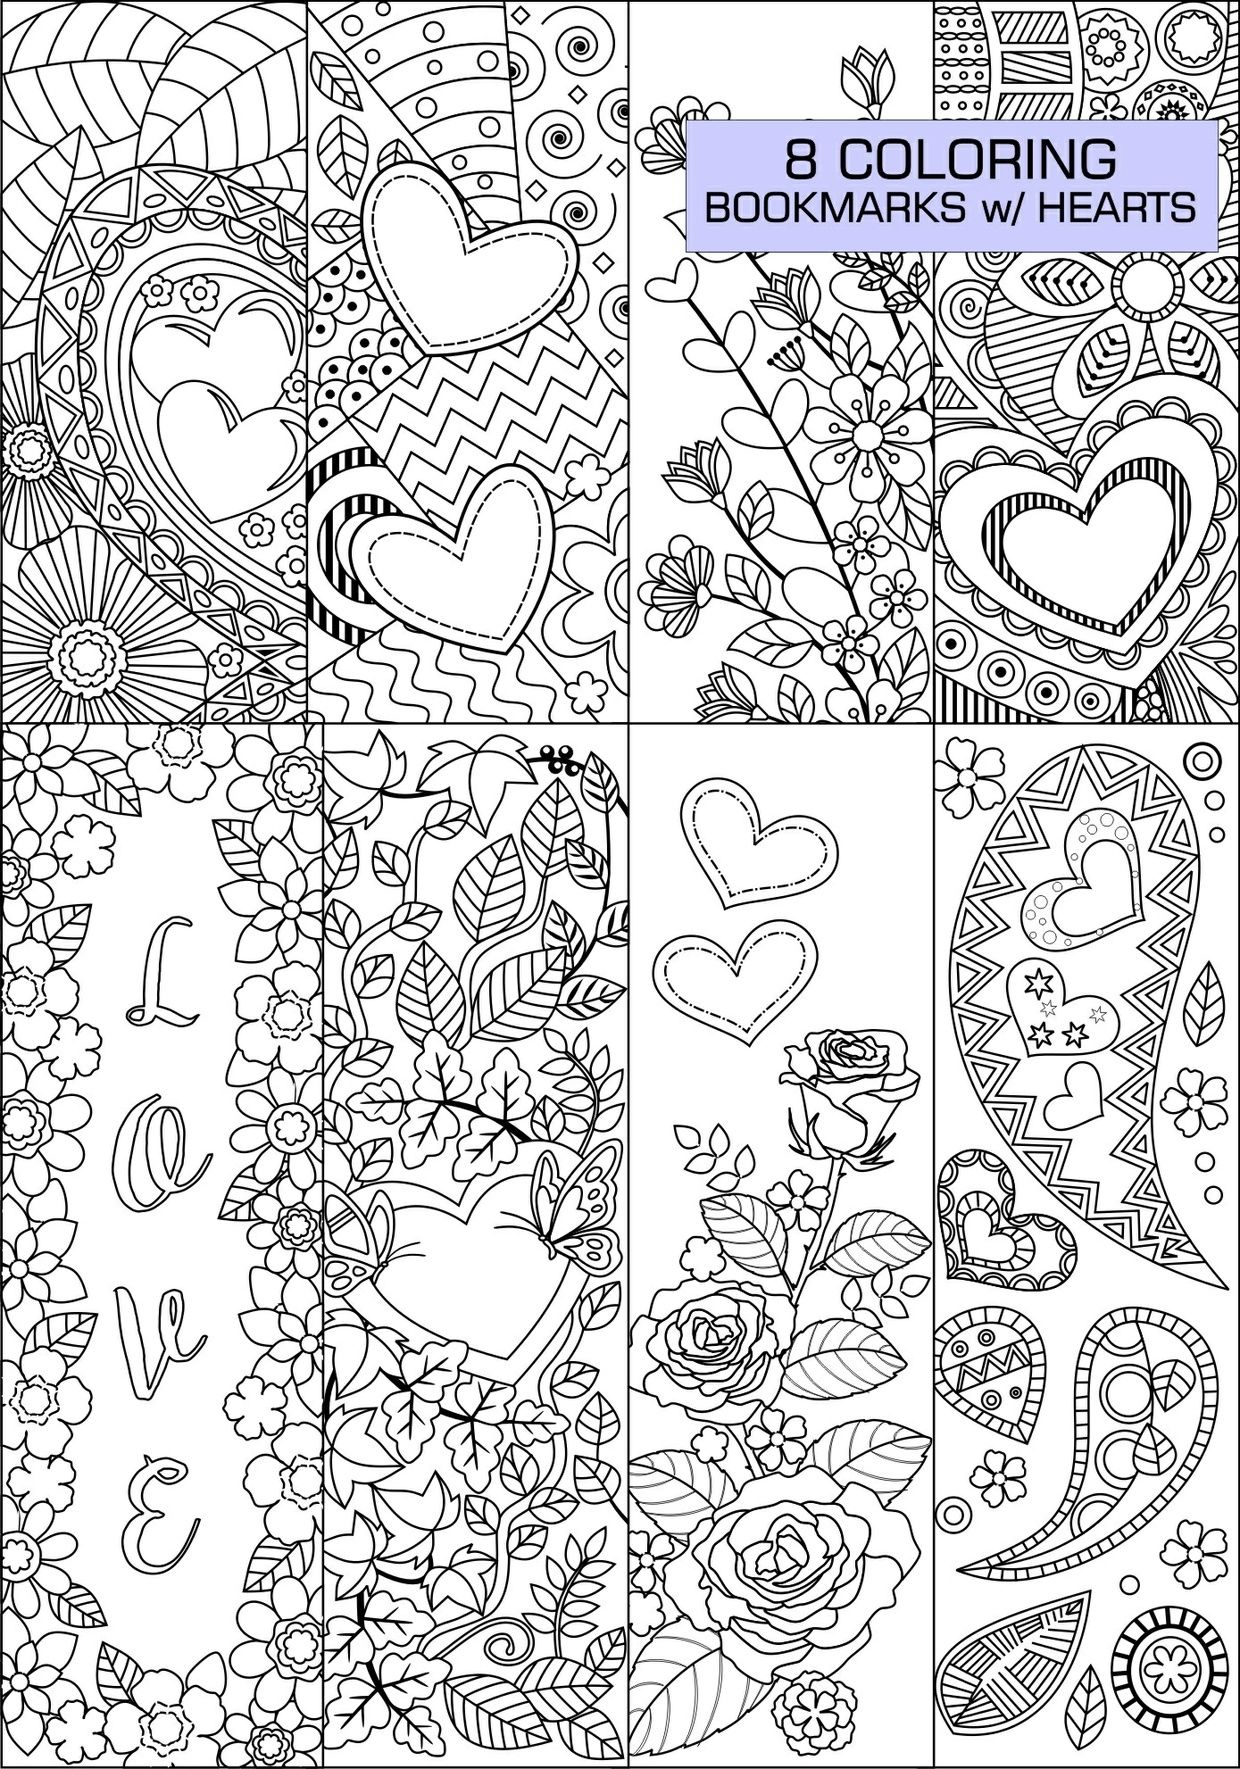 Set Of 8 Coloring Bookmarks With Hearts Art Doodles For Etsy Coloring Bookmarks Heart Coloring Pages Book Markers